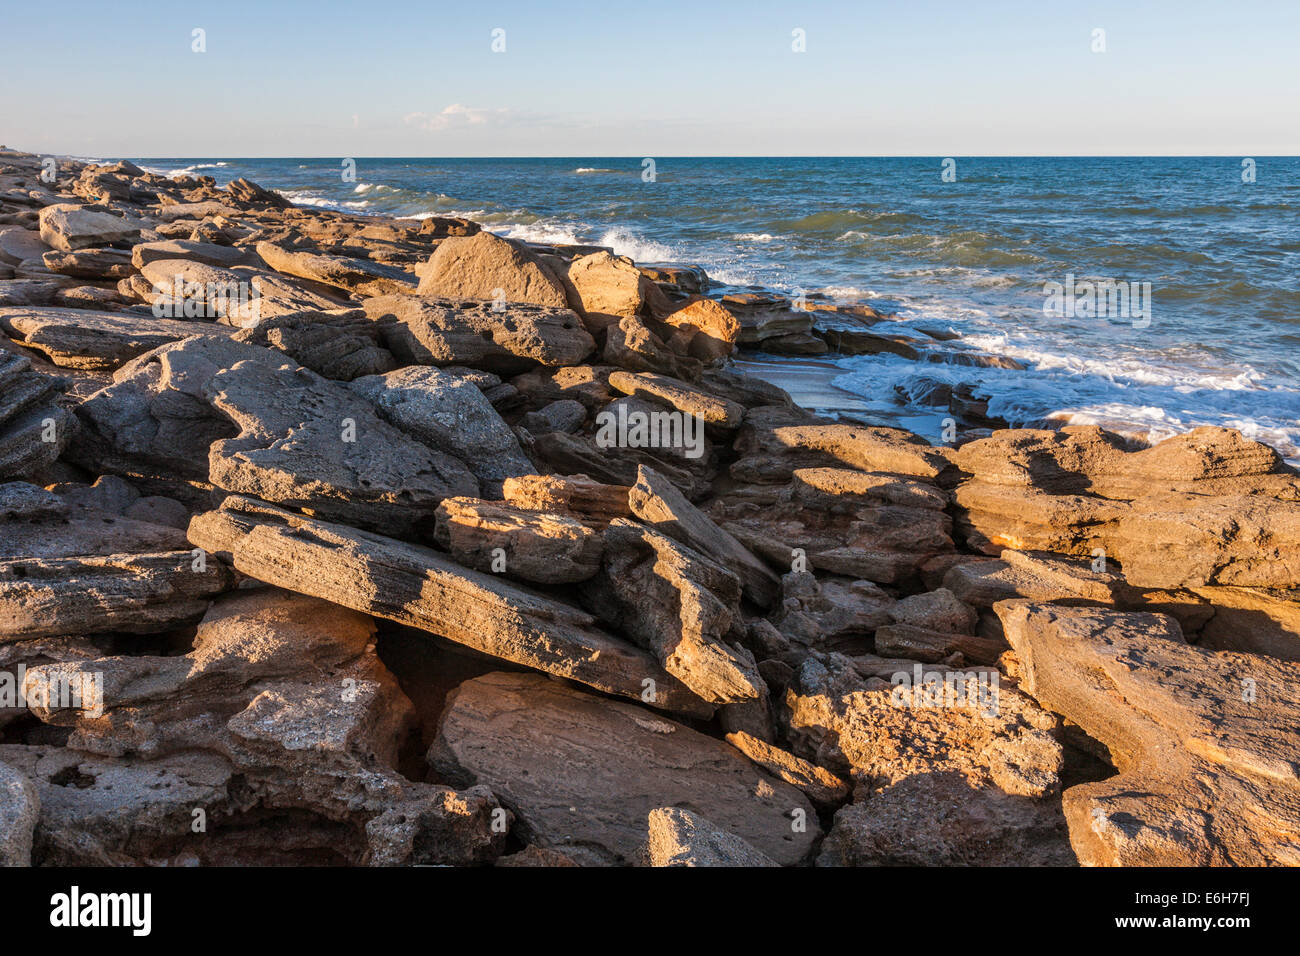 Coquina rock formations along coast of Atlantic Ocean at Washington Oaks Gardens State Park in Palm Coast, Florida, - Stock Image